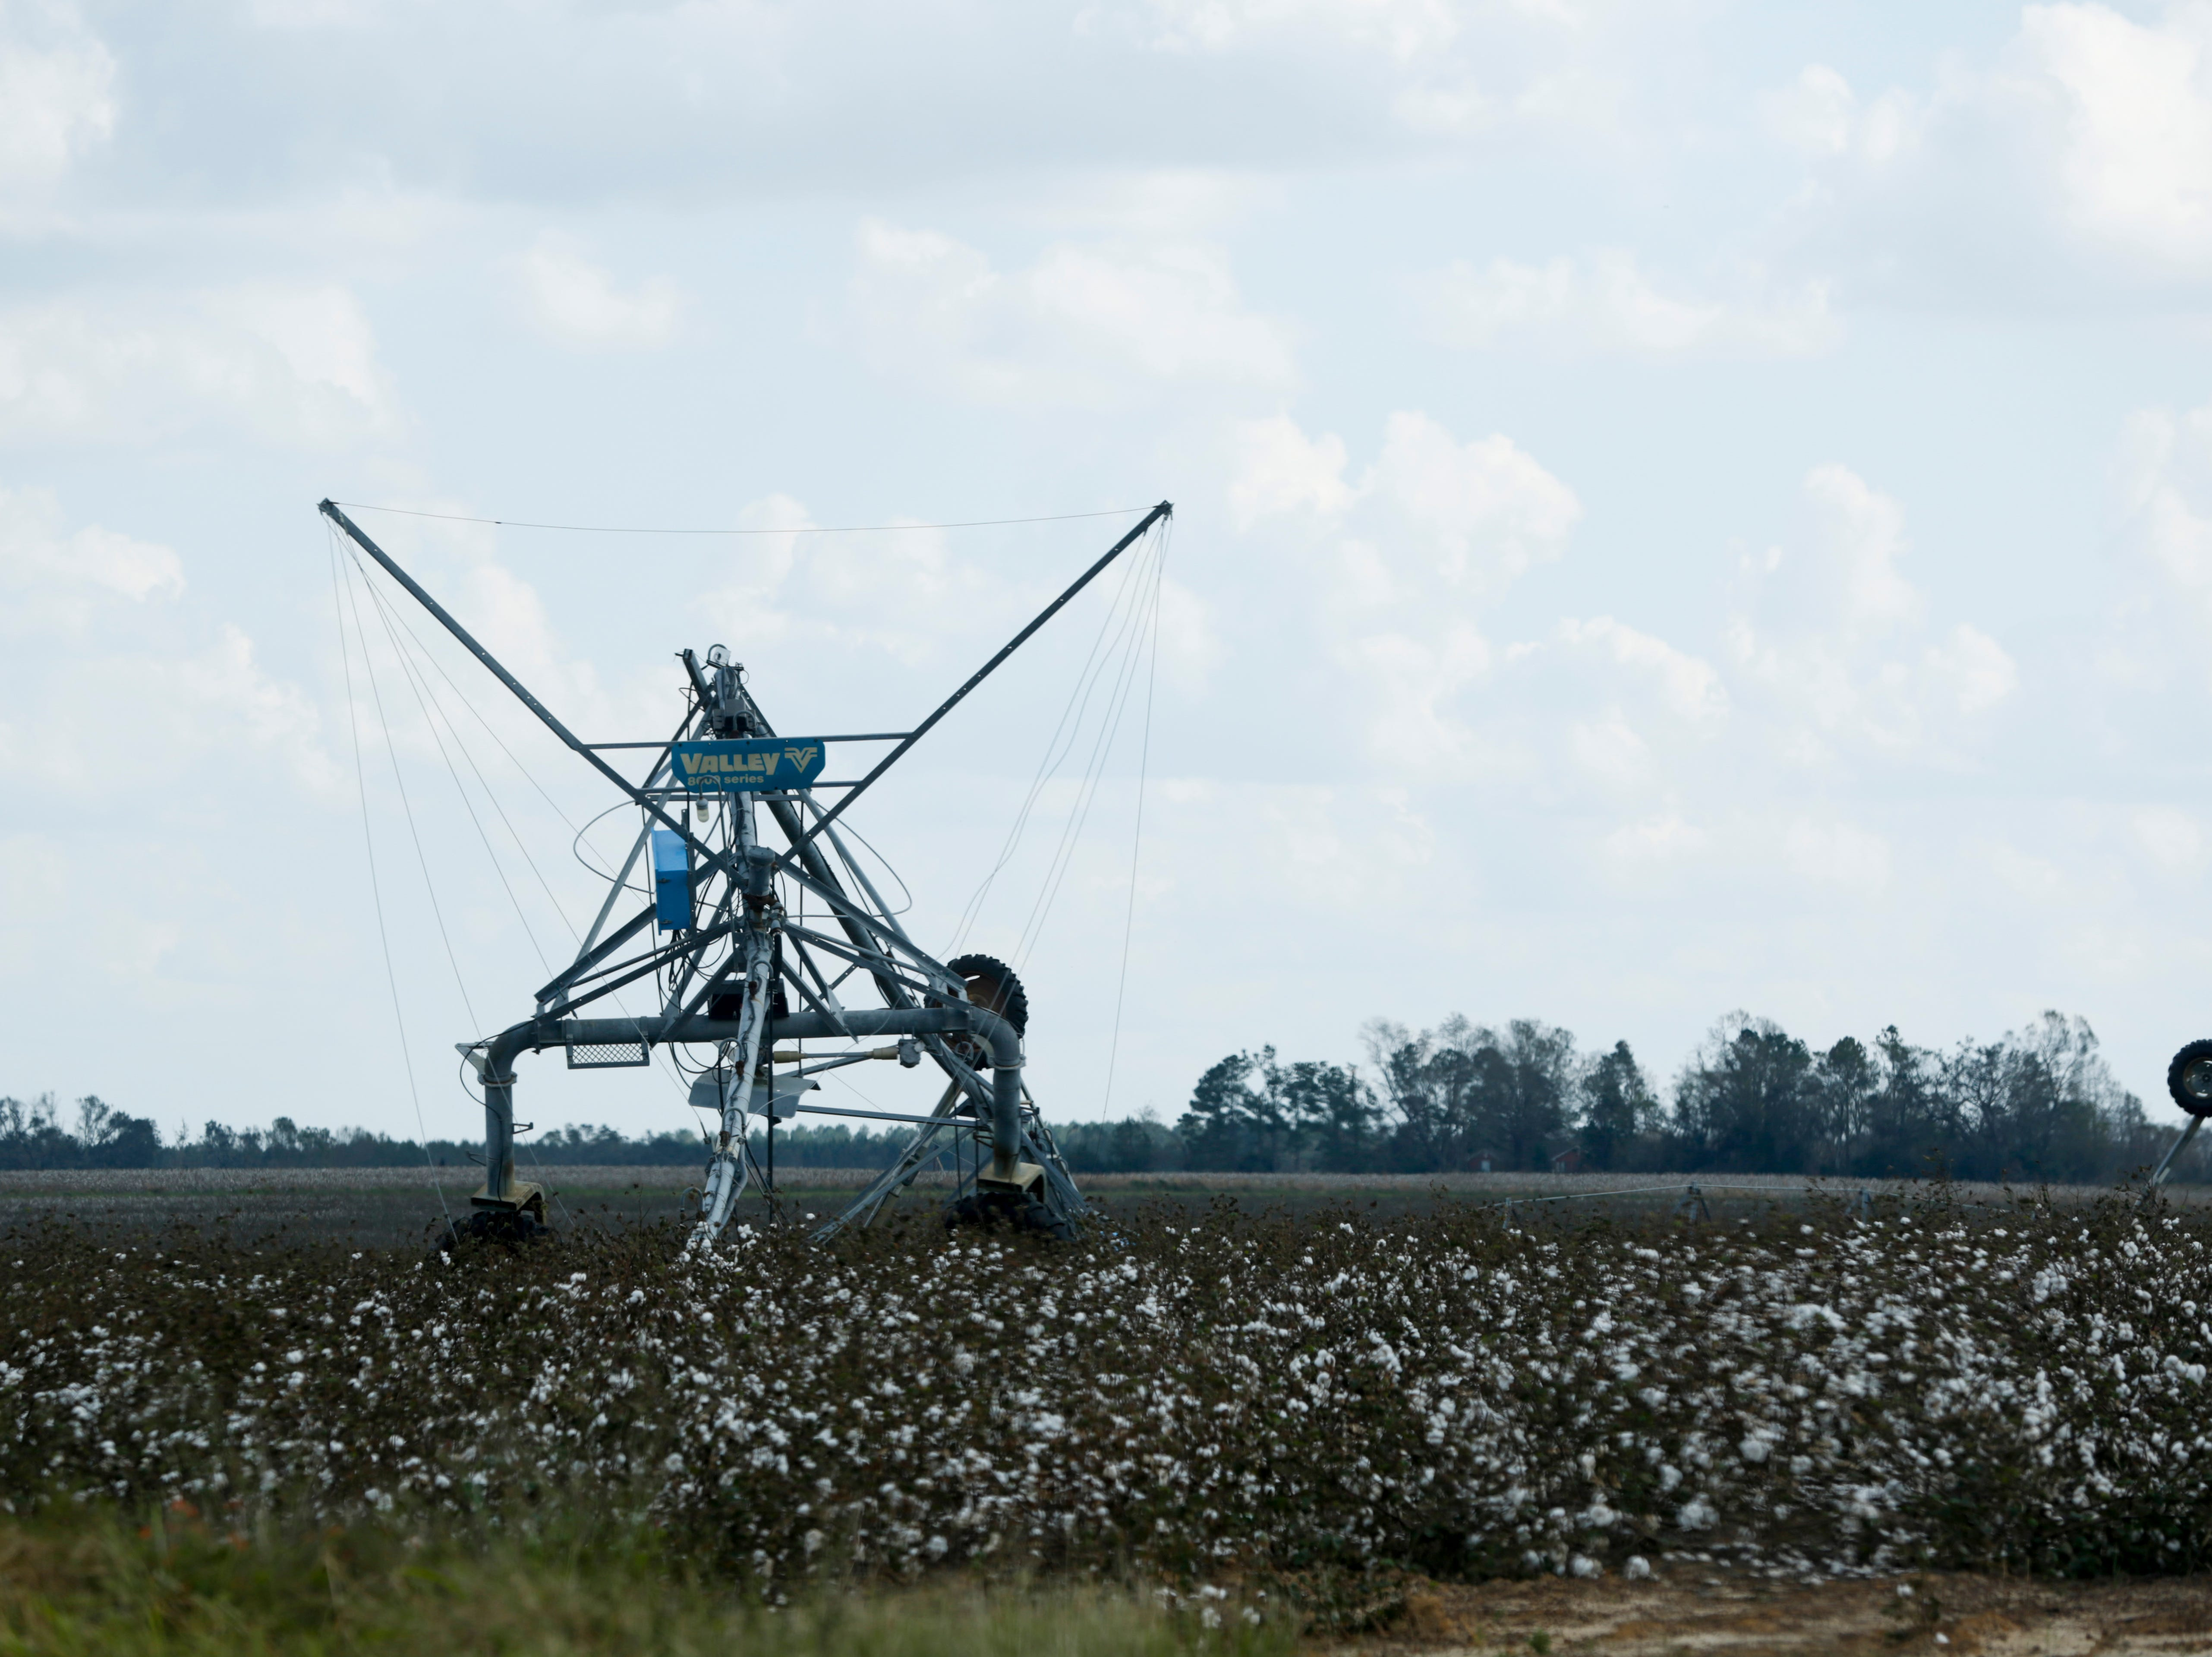 An irrigation system is upside down in a cotton field near Donalsonville, Ga. in the aftermath of Hurricane Michael Wednesday, Oct. 17, 2018.